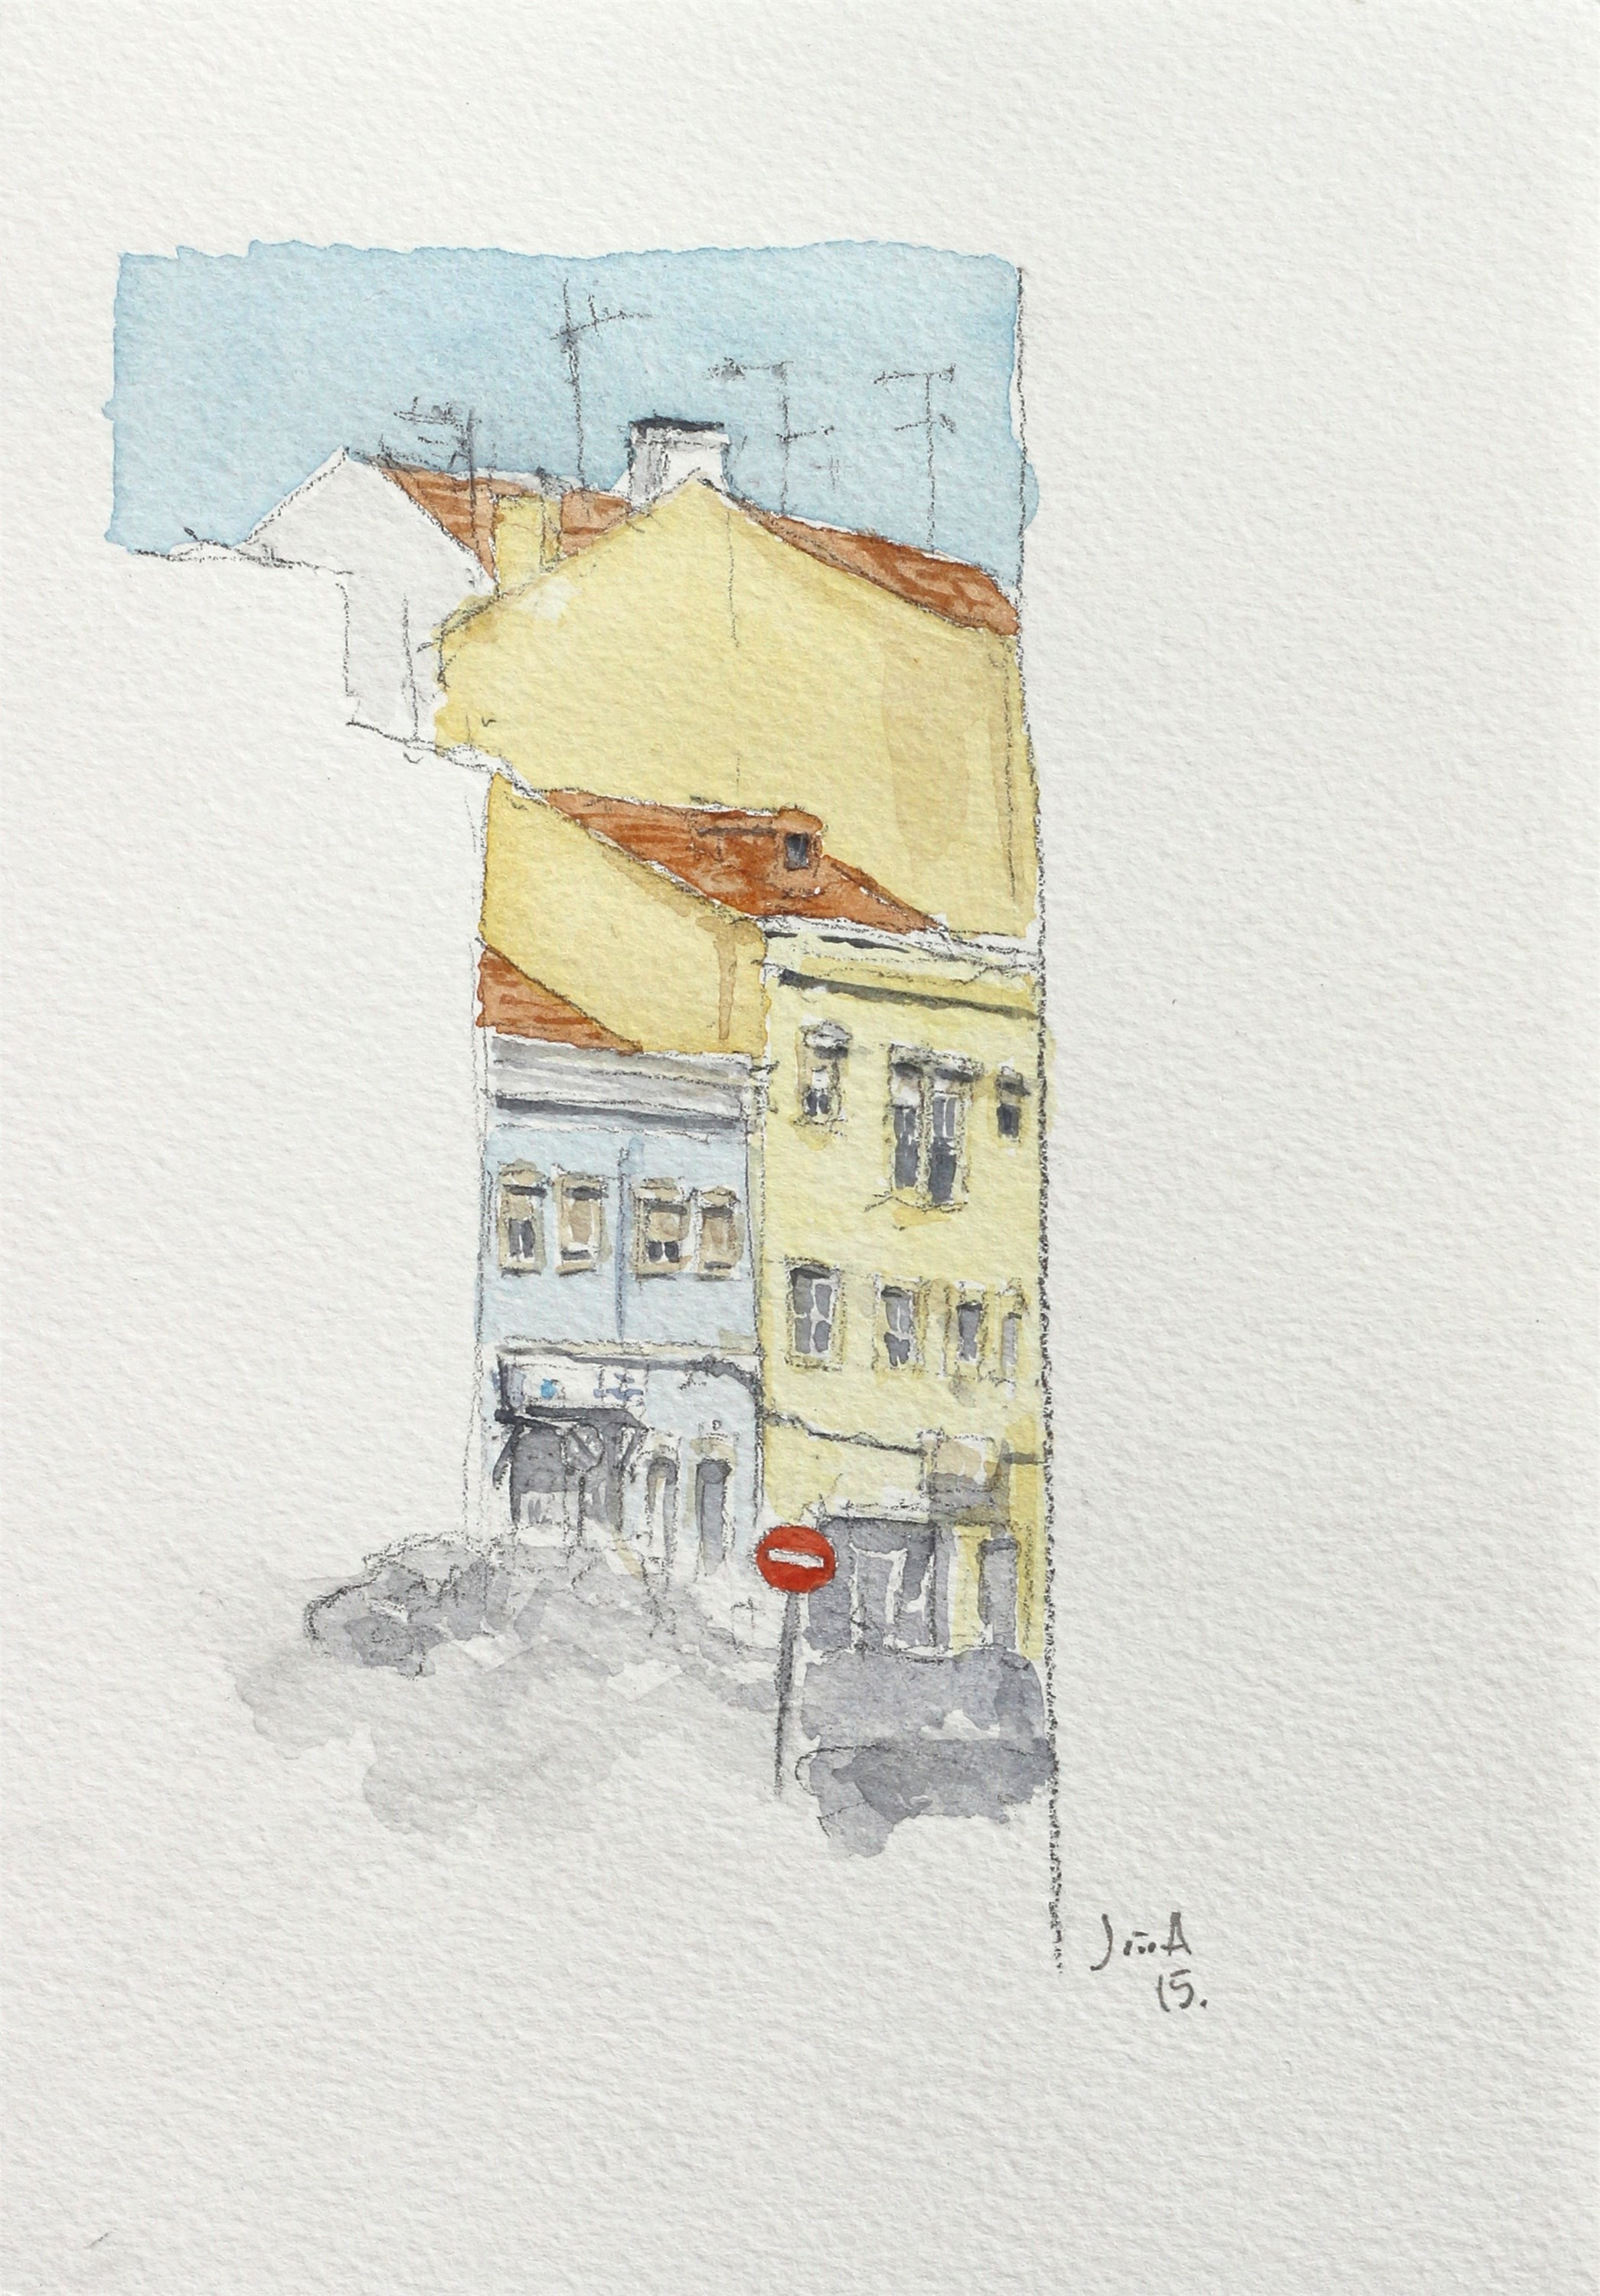 Sentido proibido, original Architecture Watercolor Drawing and Illustration by João Gil Antunes